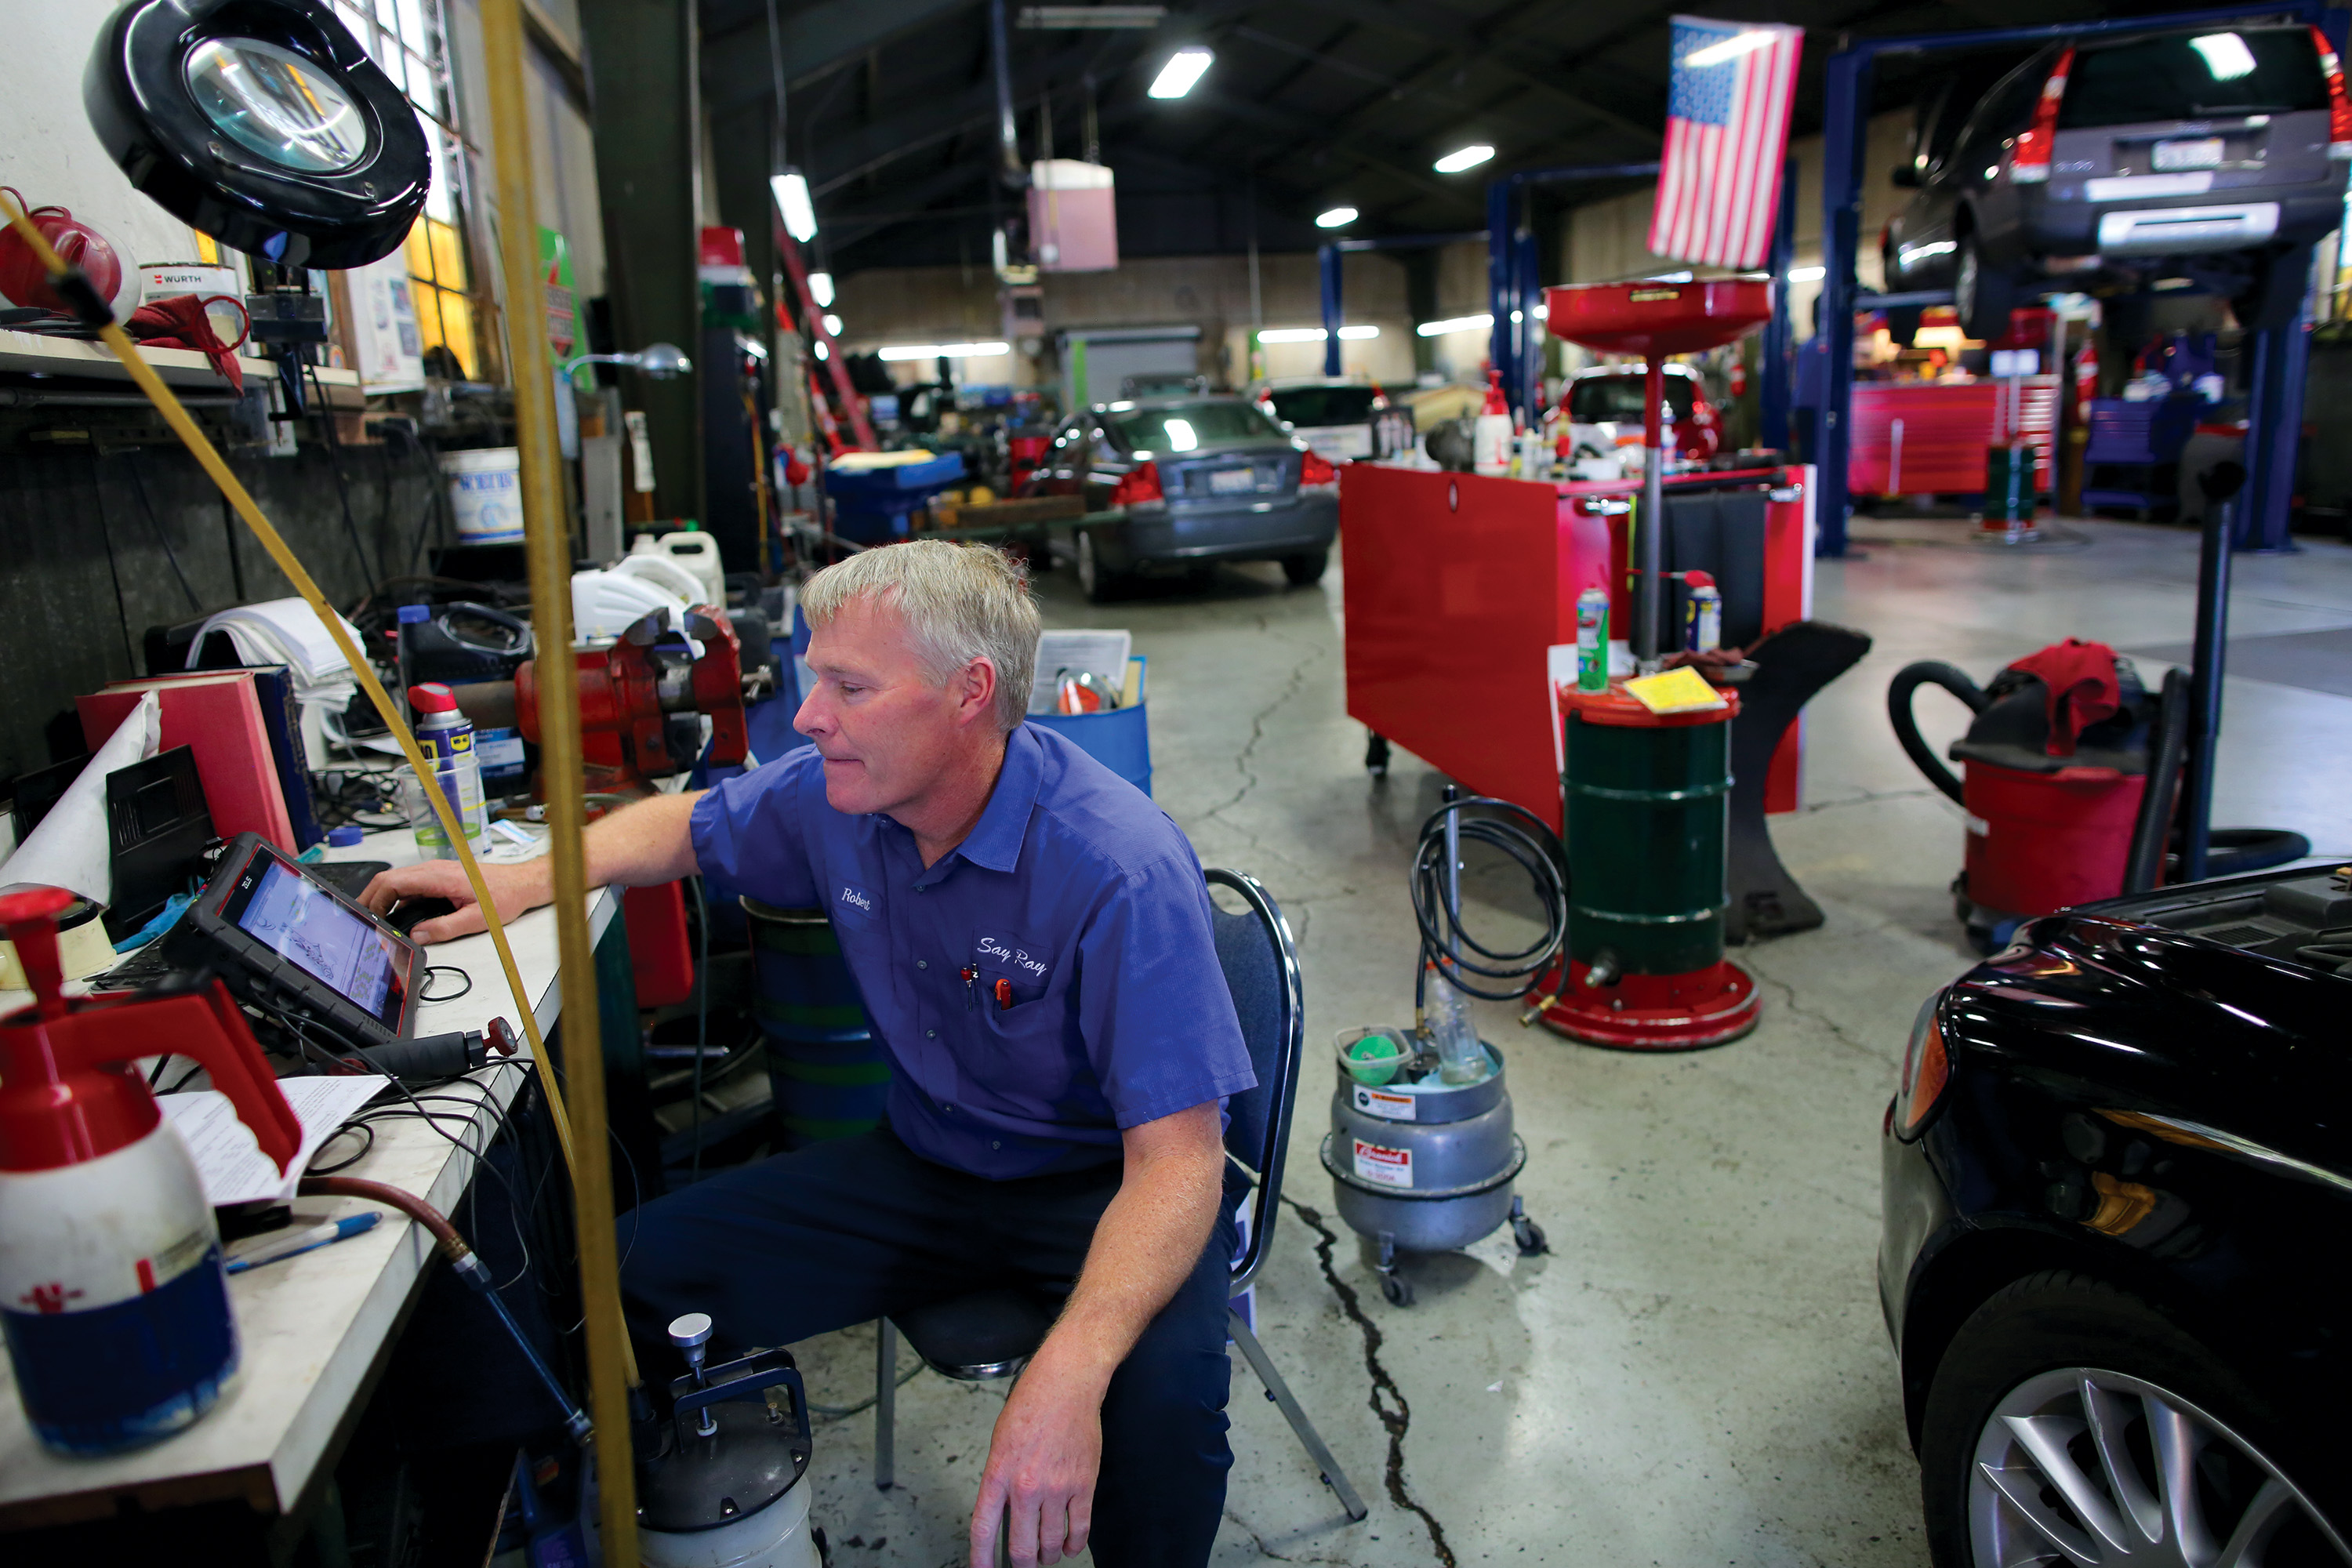 Robert Michel, an employee at Say Ray, started working at the automotive repair shop over 30 years ago cleaning floor. Photo taken Oct. 1 by Sammy Dallal.